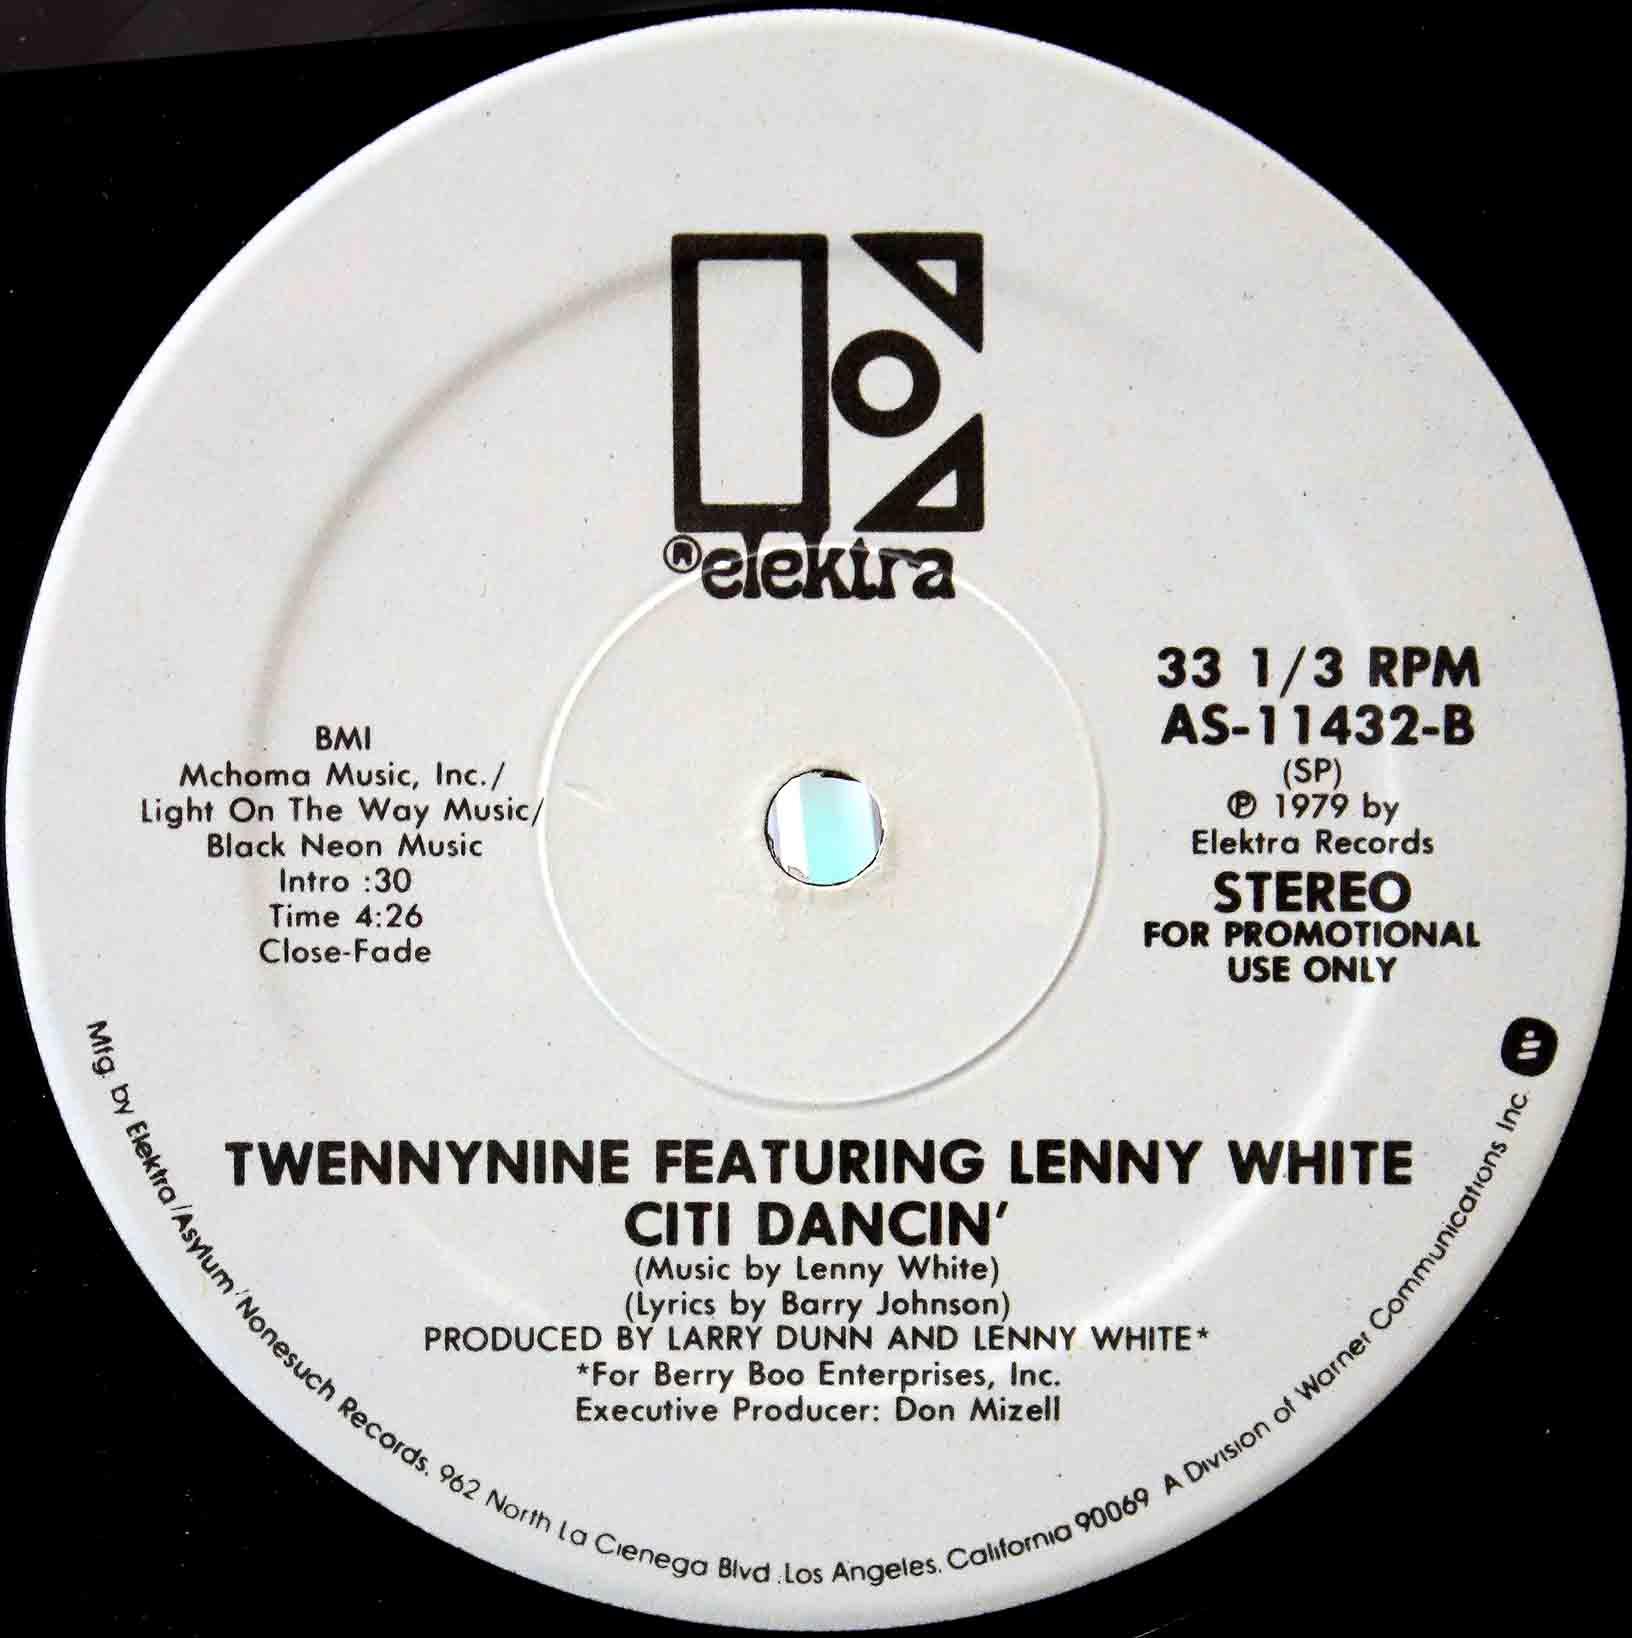 Twennynine Featuring Lenny White Peanut Butter 04